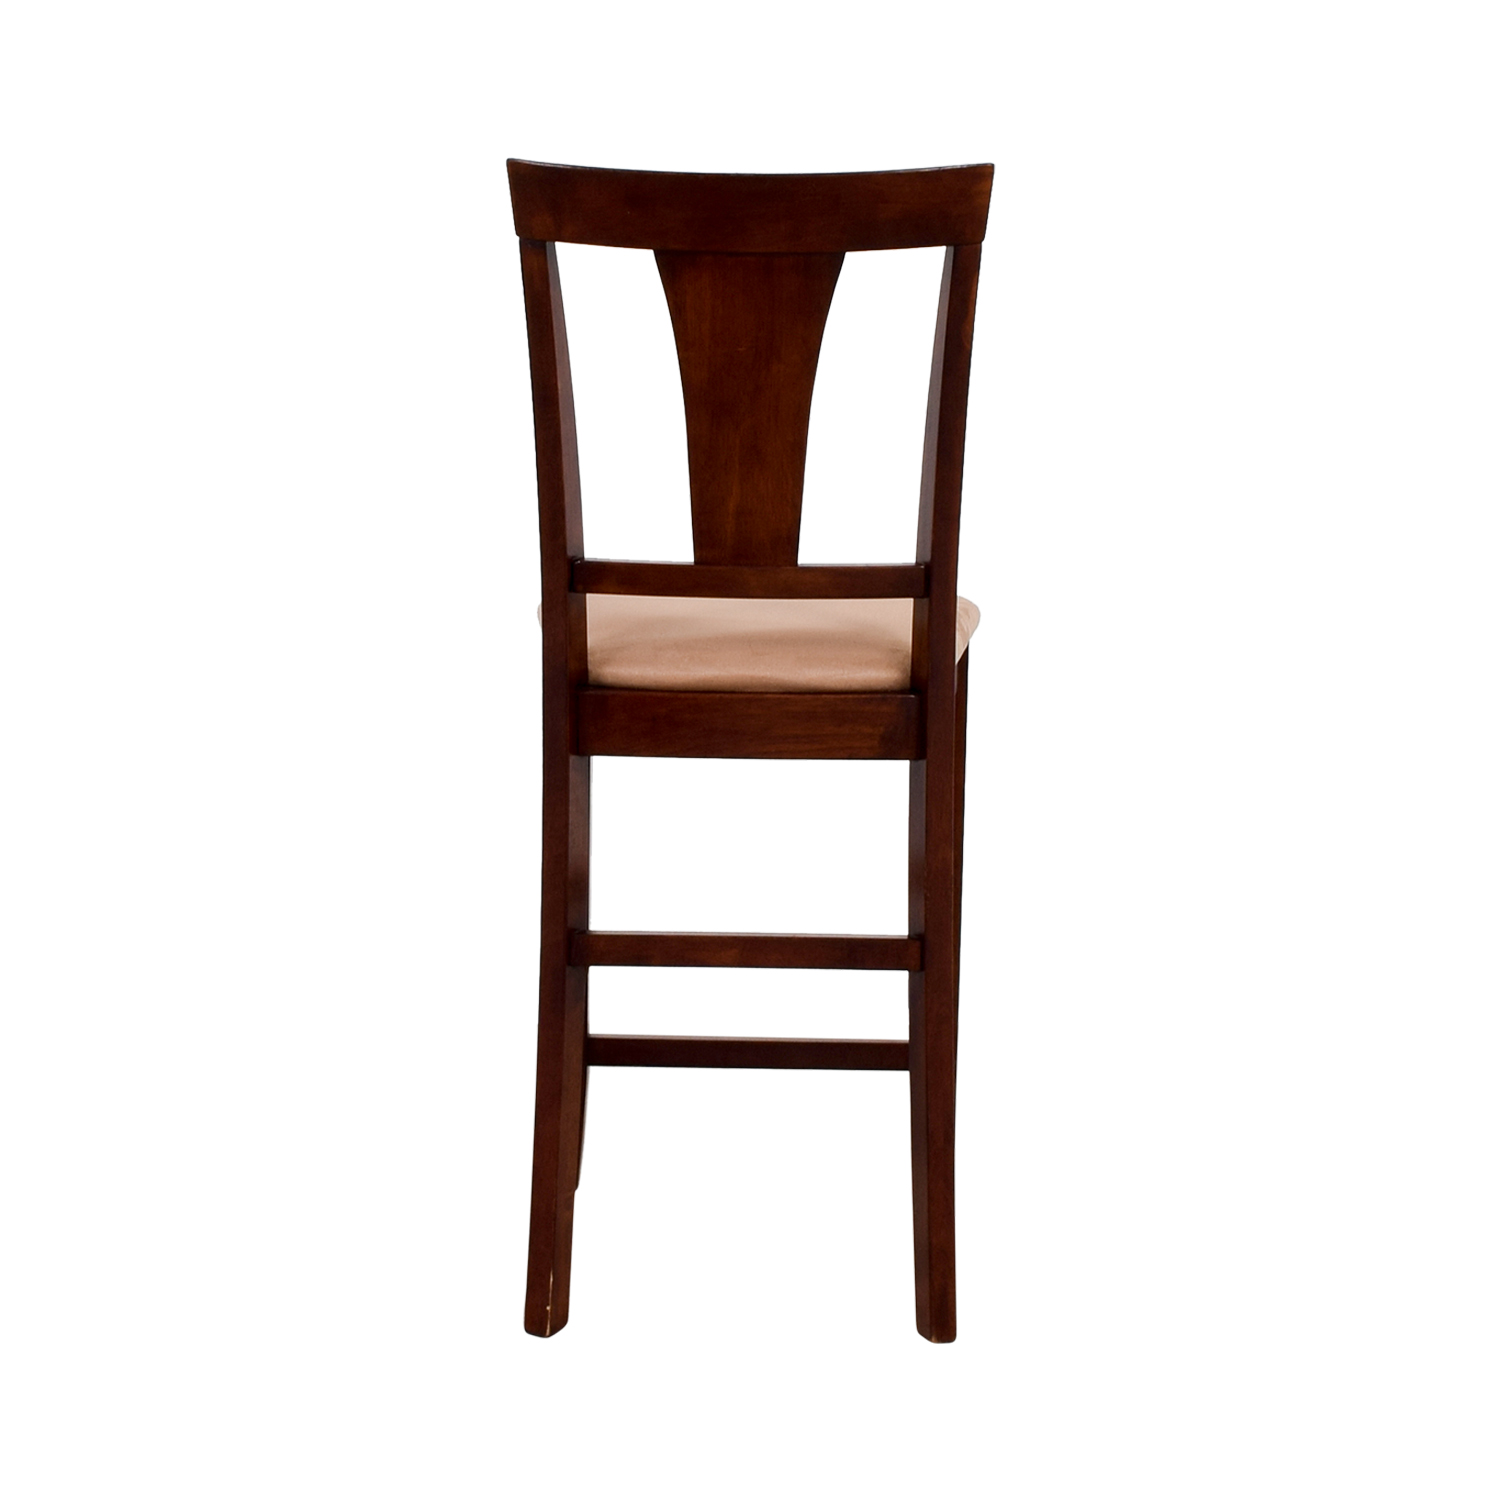 Light Cherry Wood Counter Height Chair with Padded Seat / Chairs